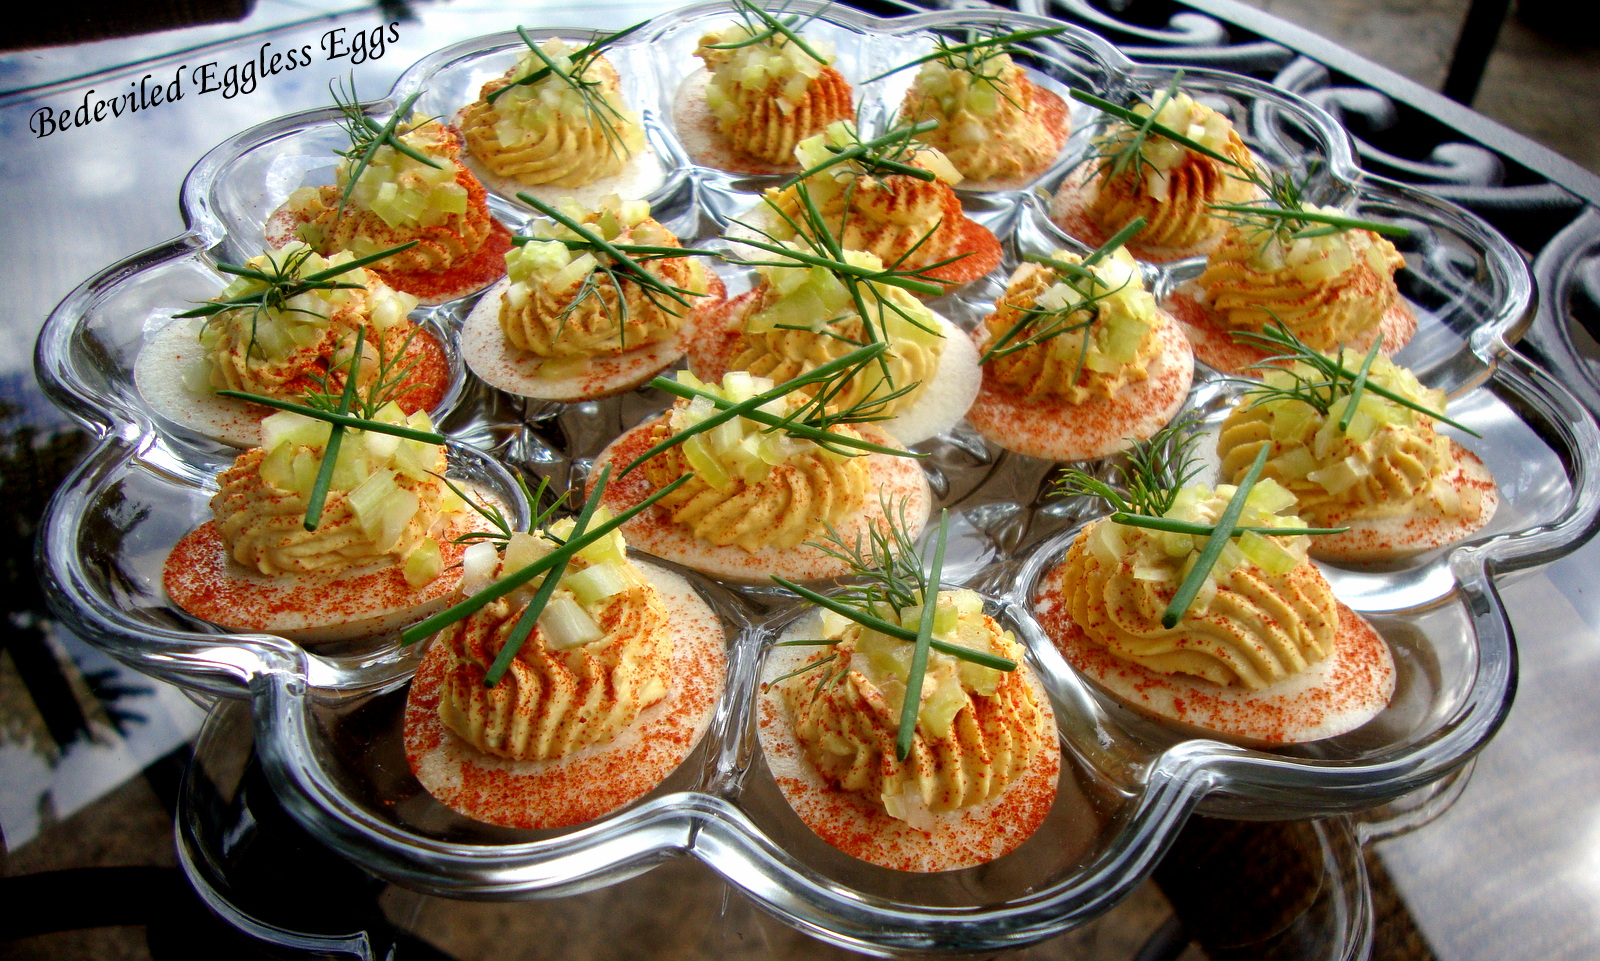 Bedeviled Eggless Eggs